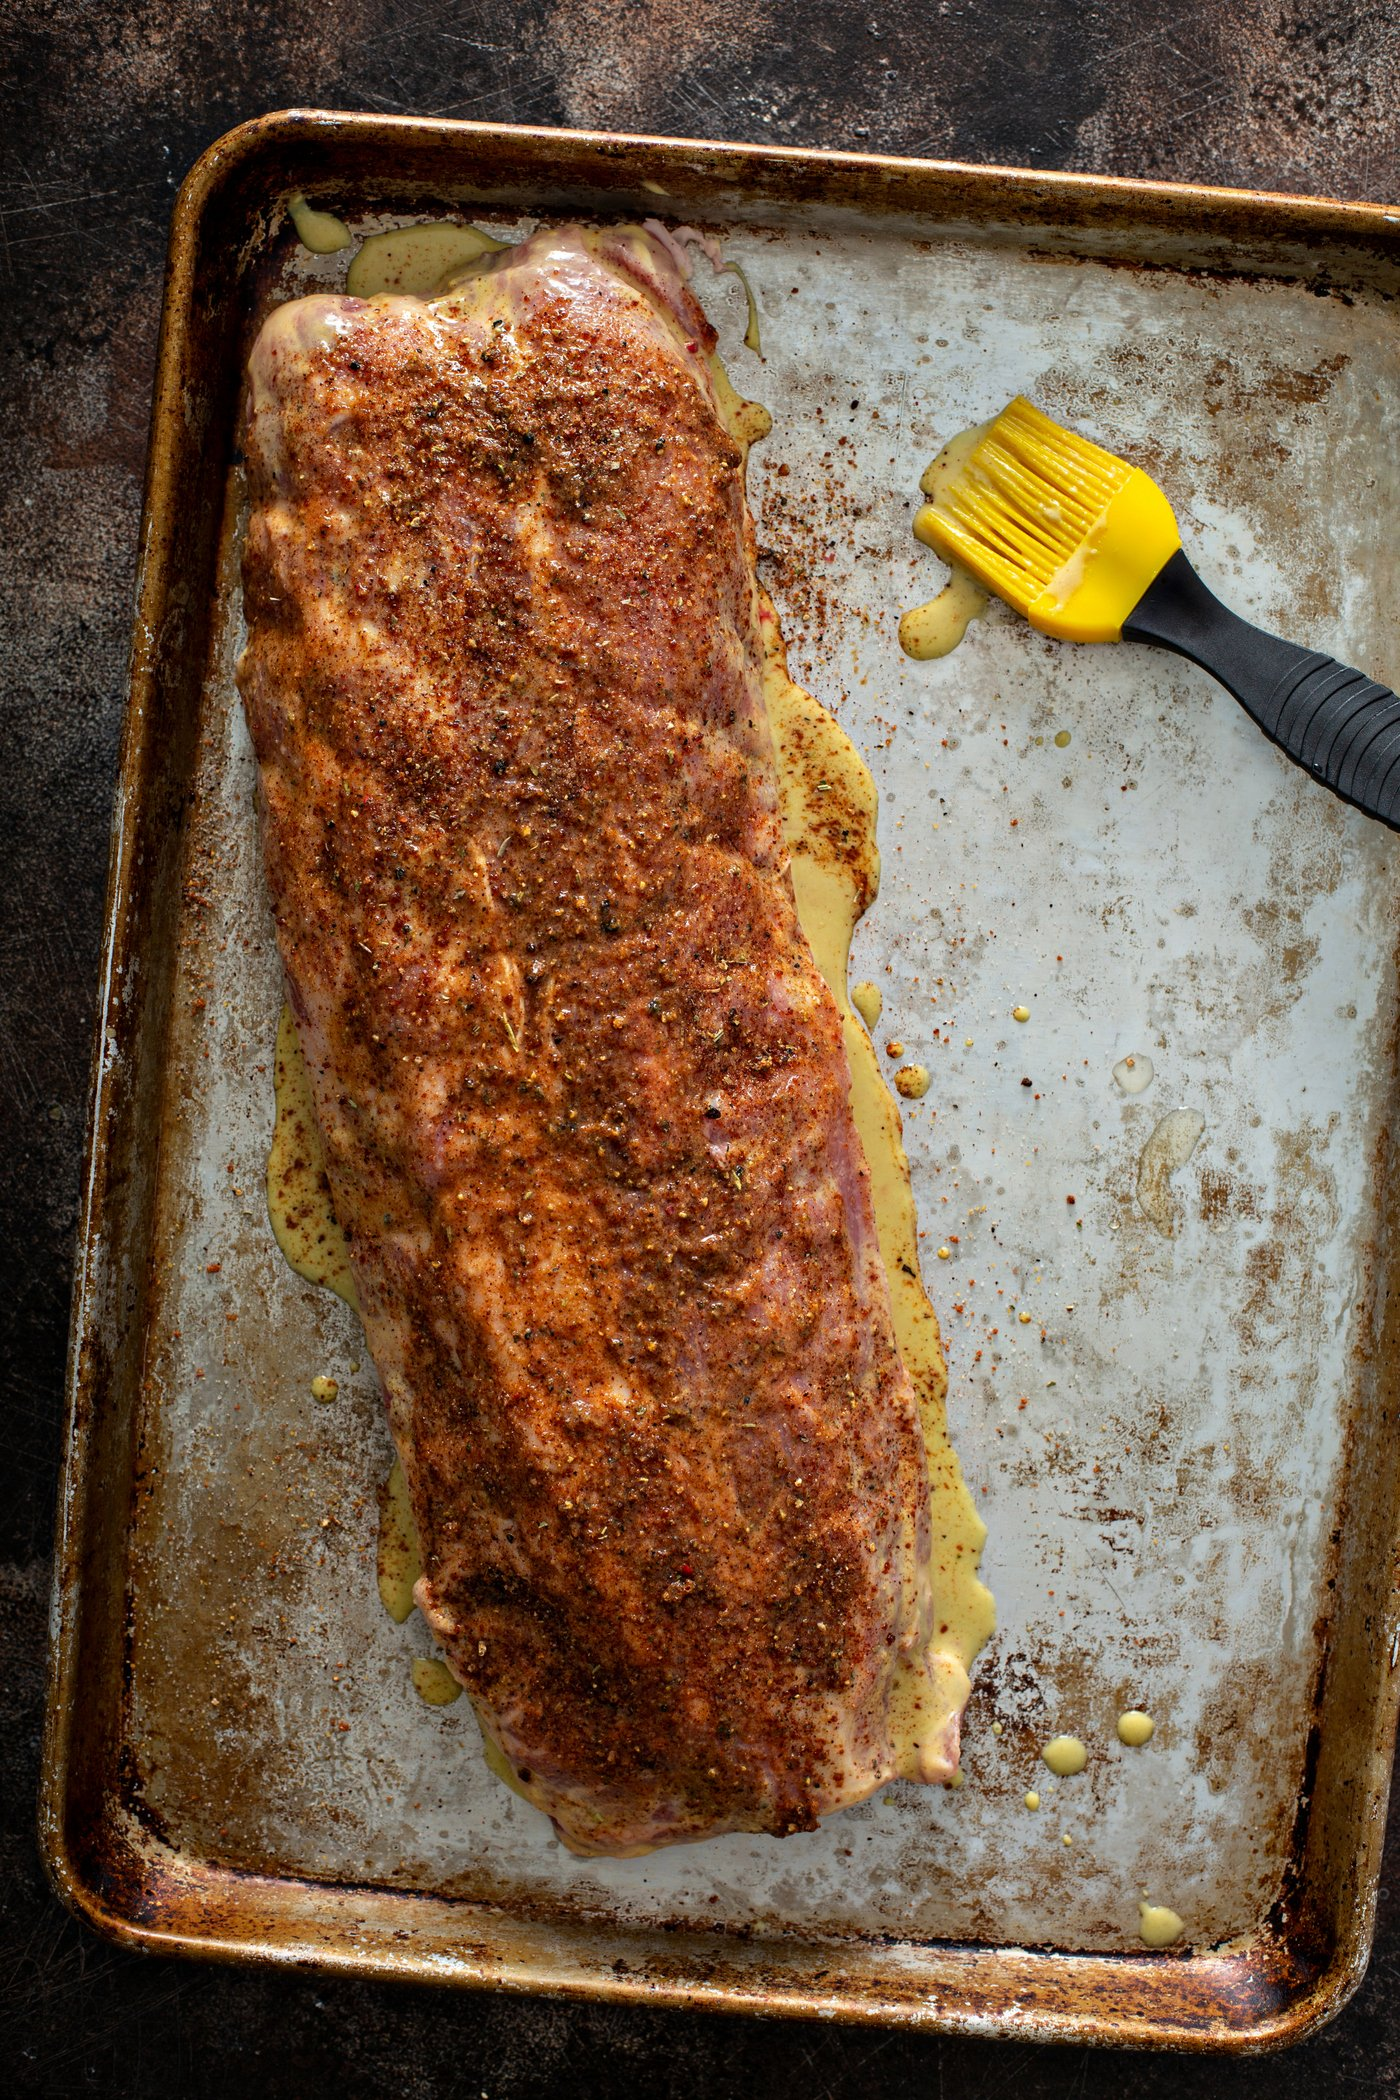 A rack of ribs covered with bbq rub and ready to go on the grill.